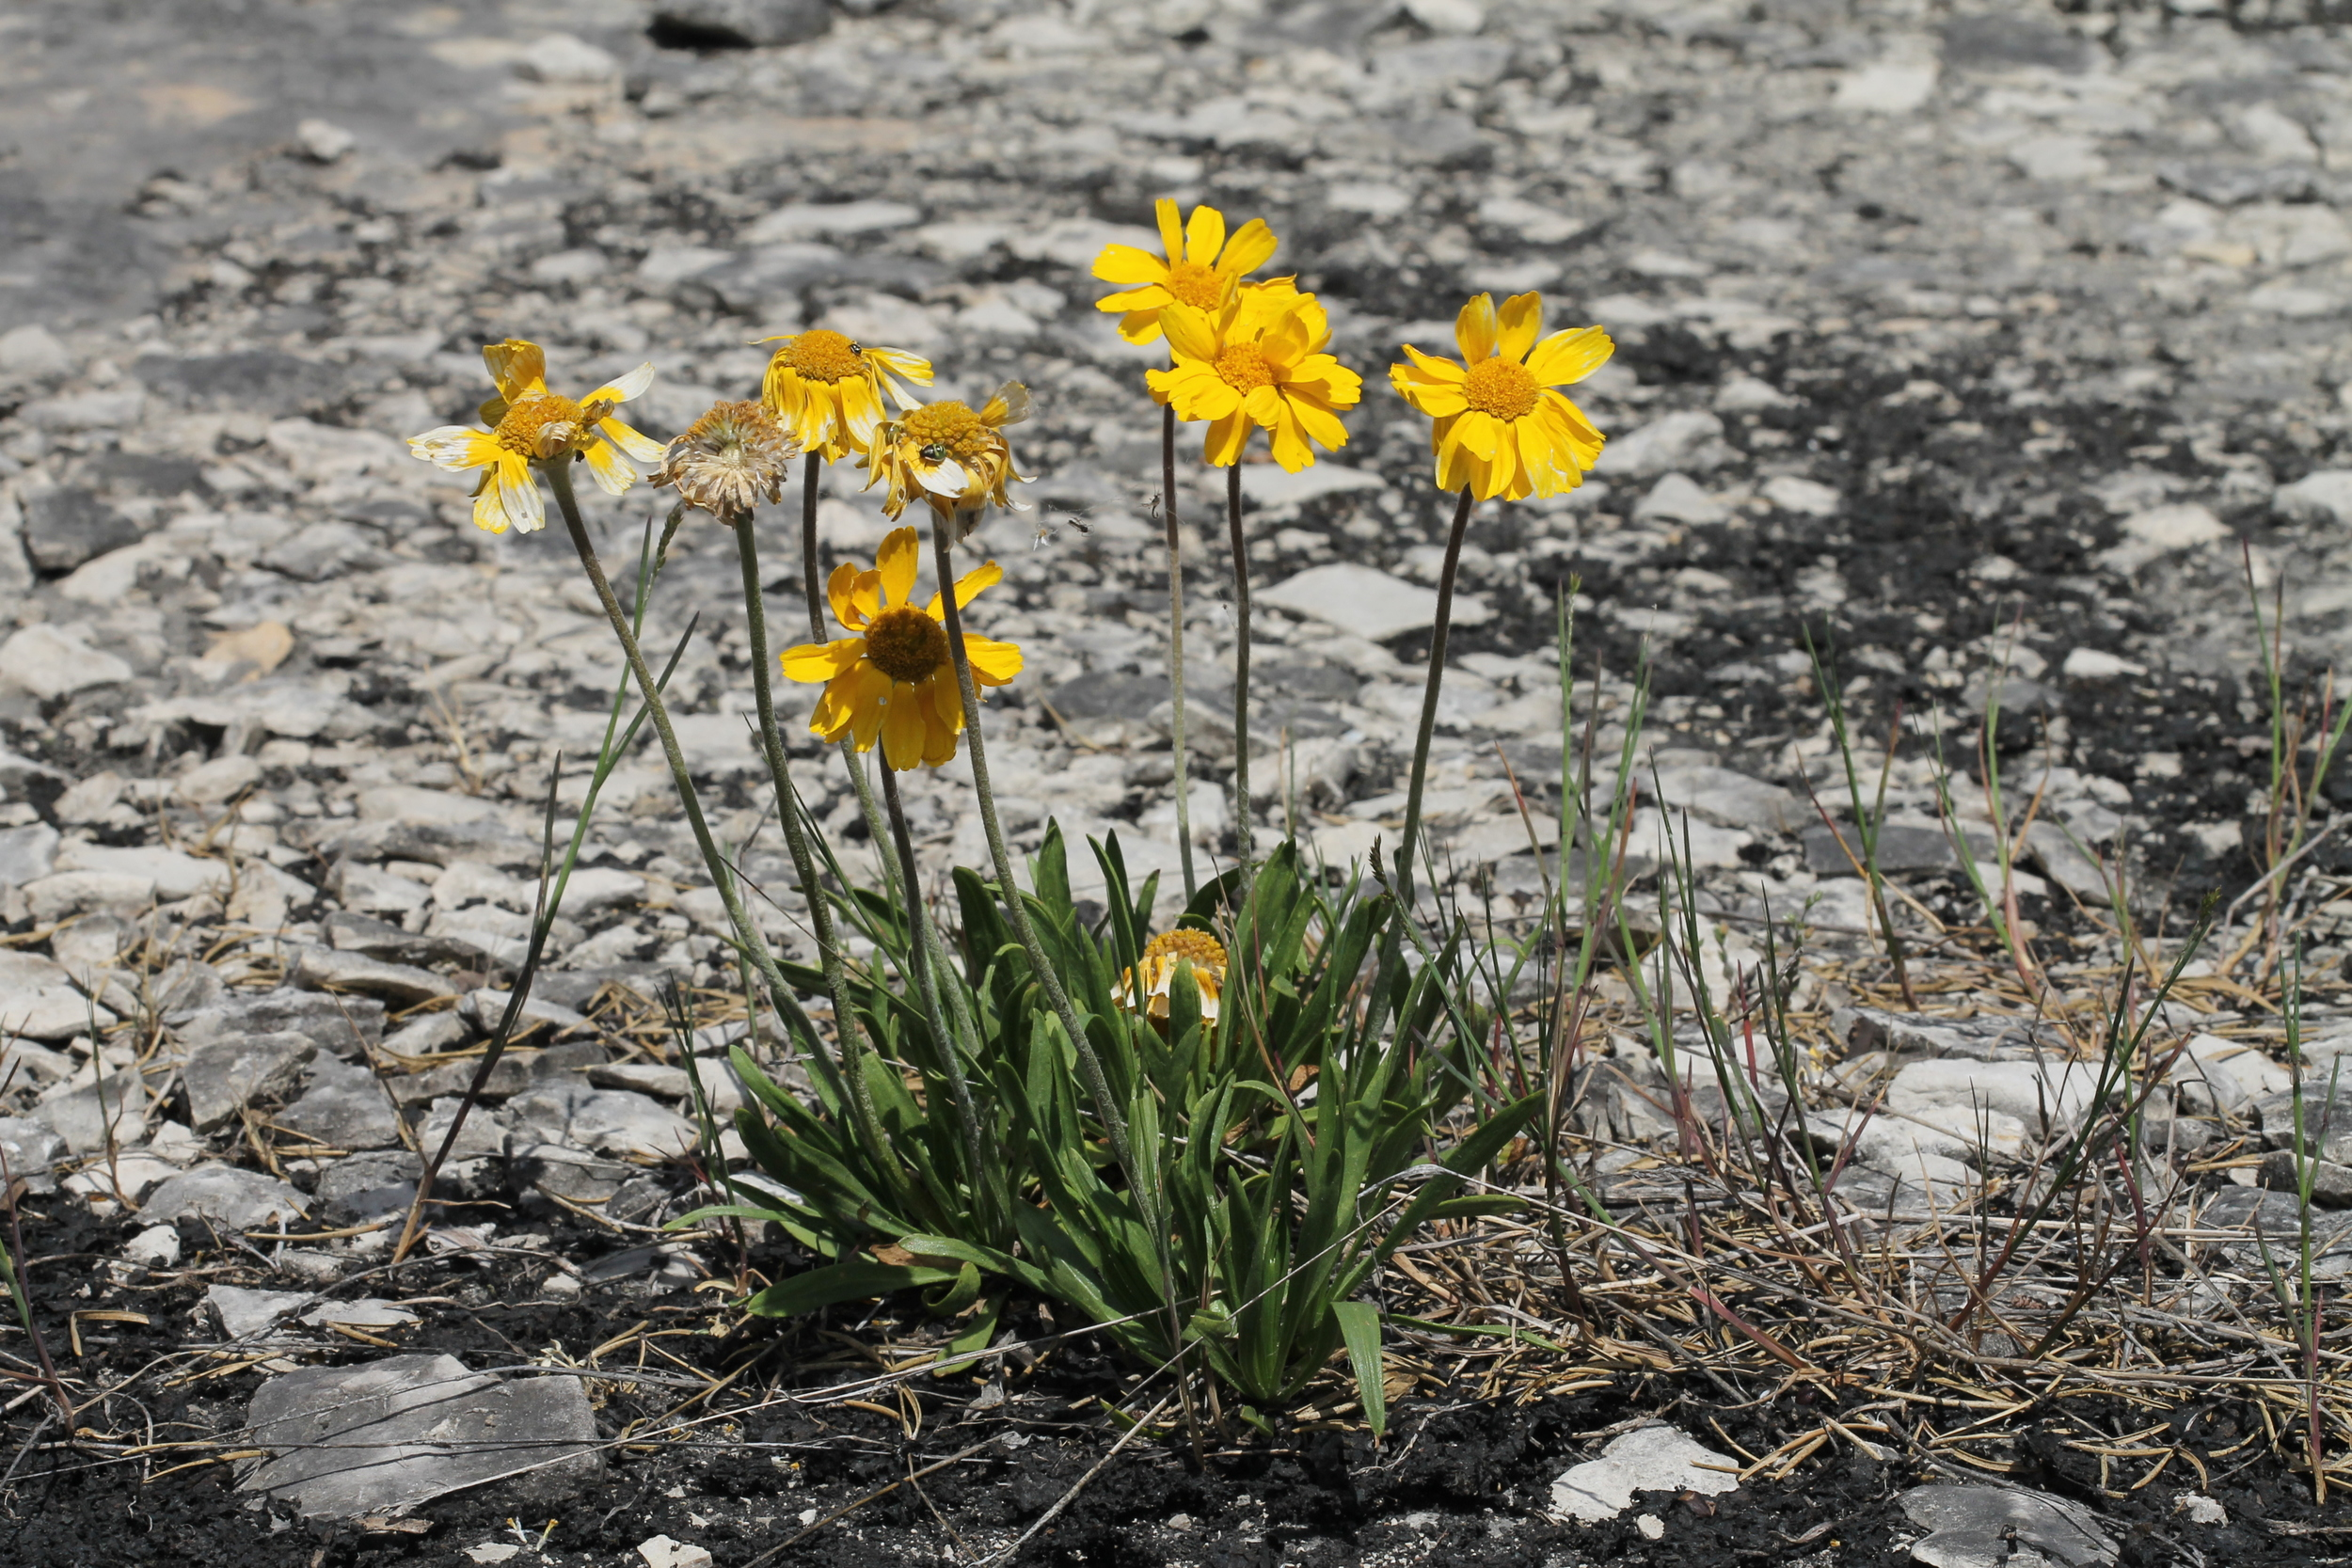 Image by Rob Routledge (Lakeside Daisy, Misery Bay on Manitoulin Island).